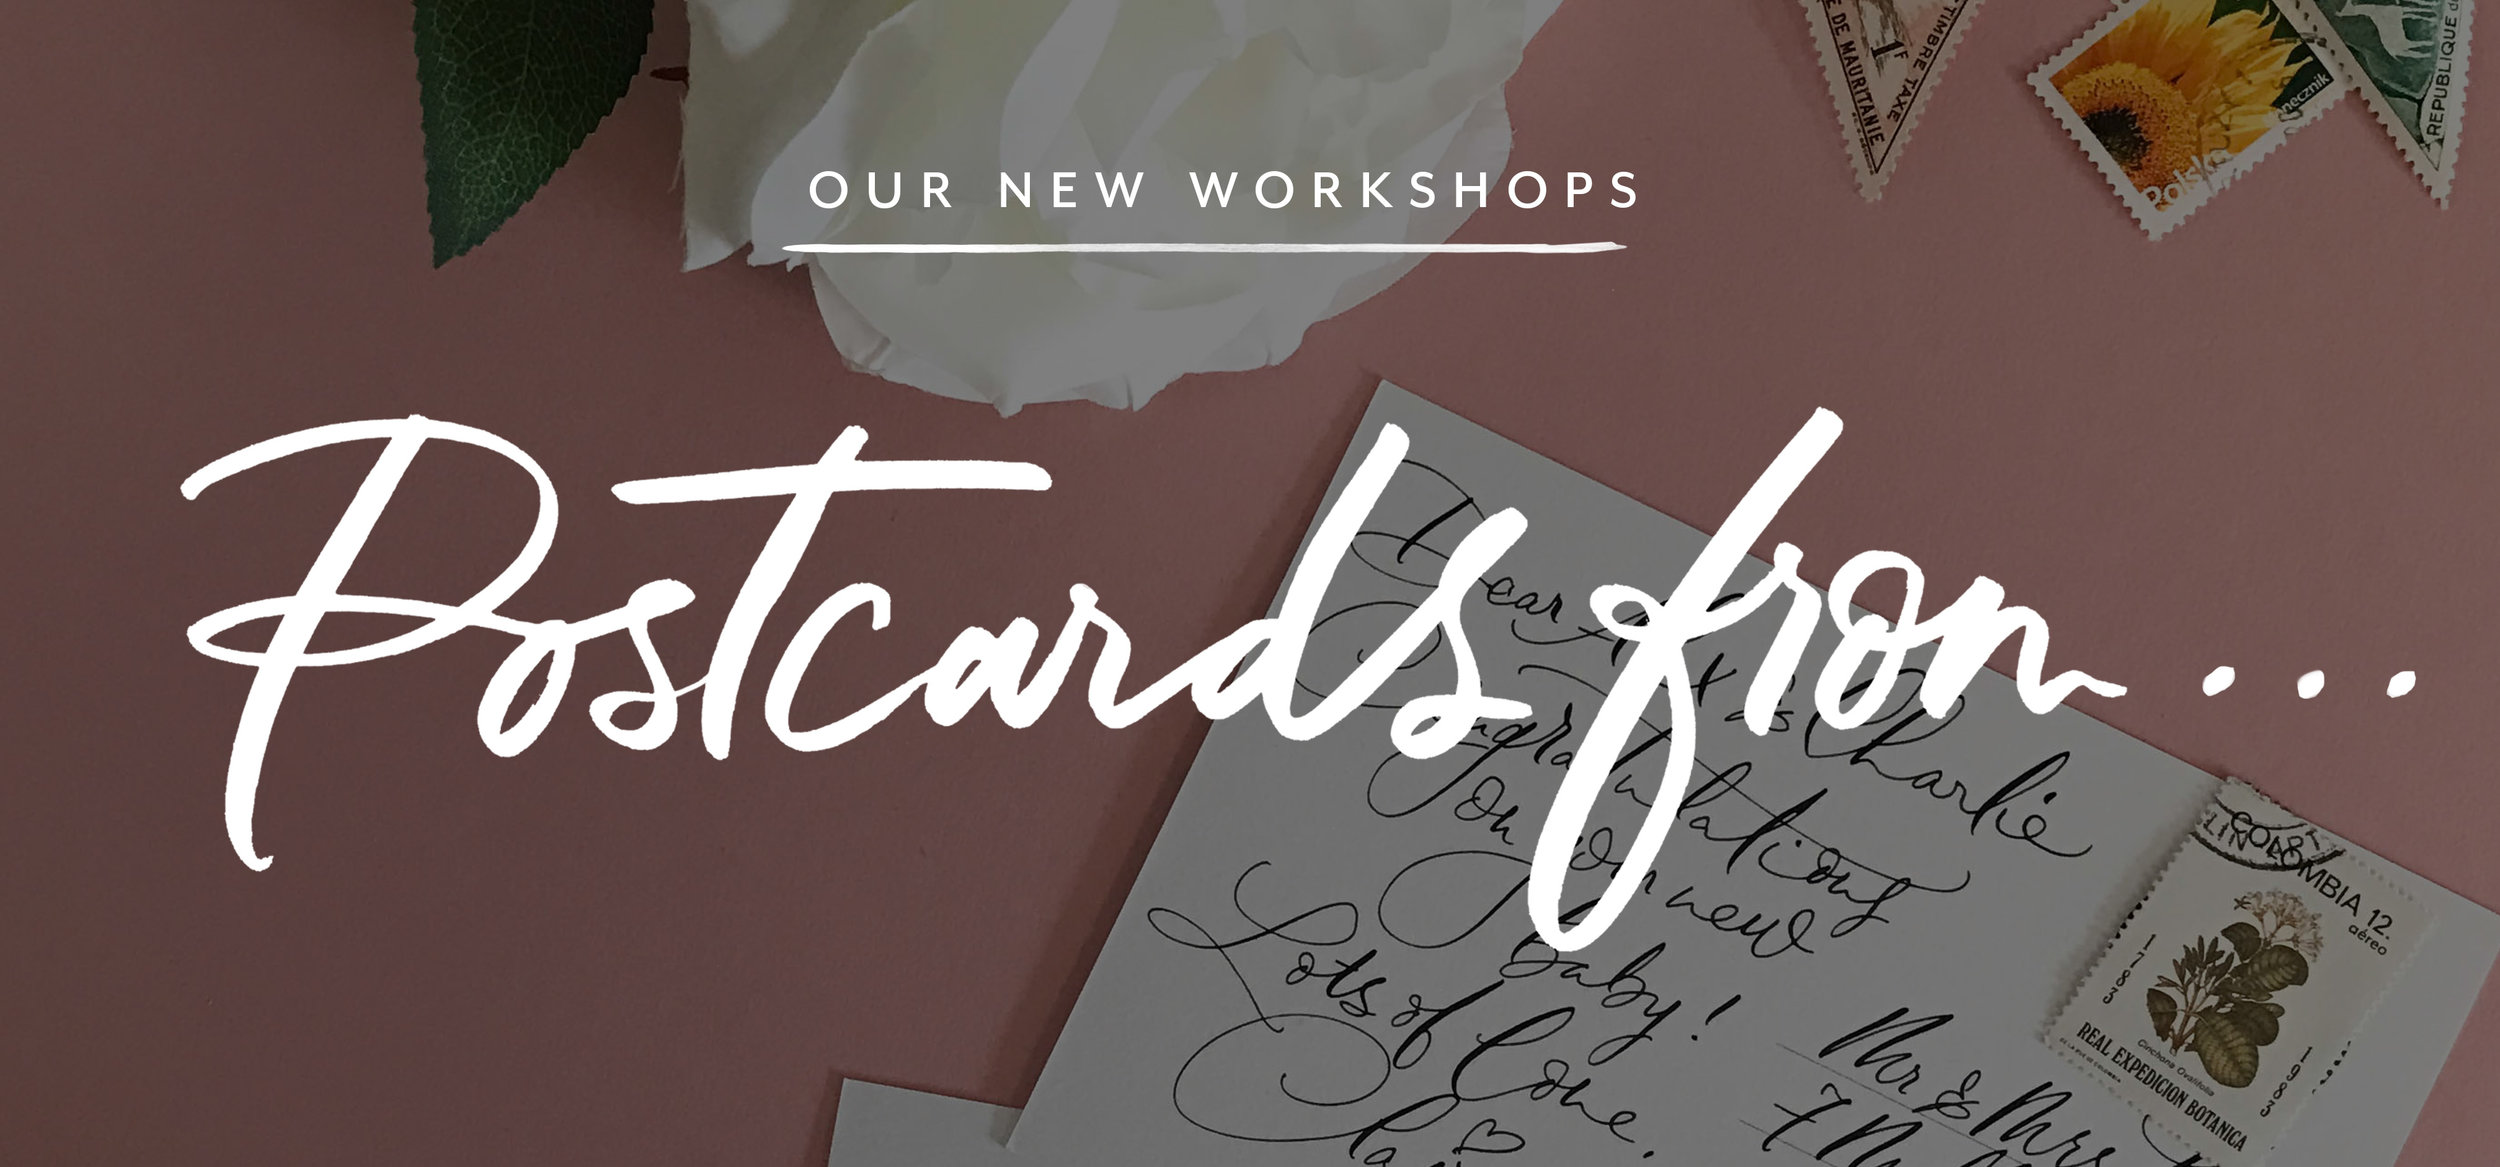 Postcards from... Workshops by Lamplighter